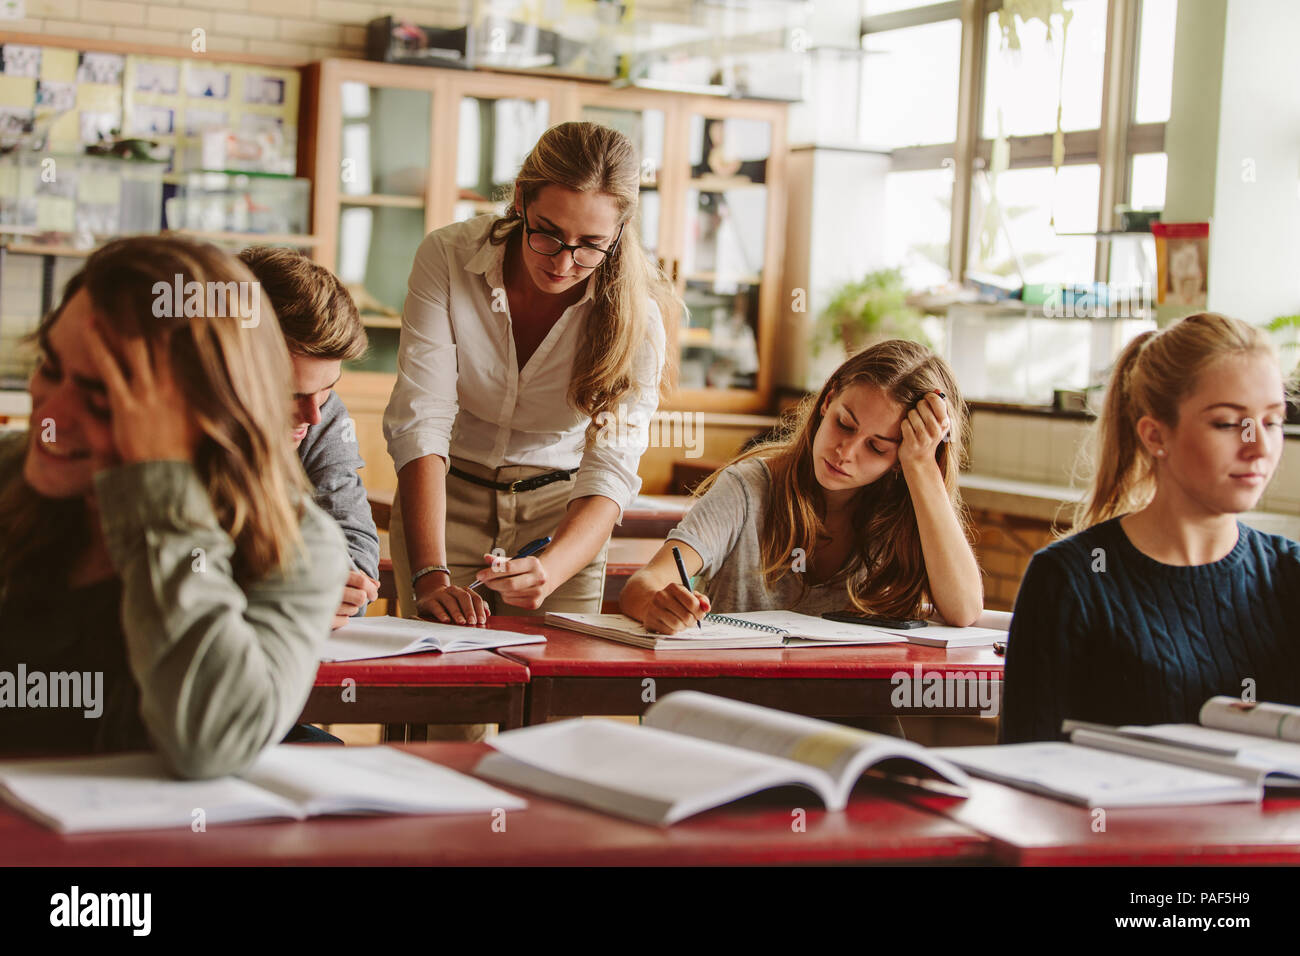 Group of university students attending lecture on campus with teacher helping in studies. - Stock Image